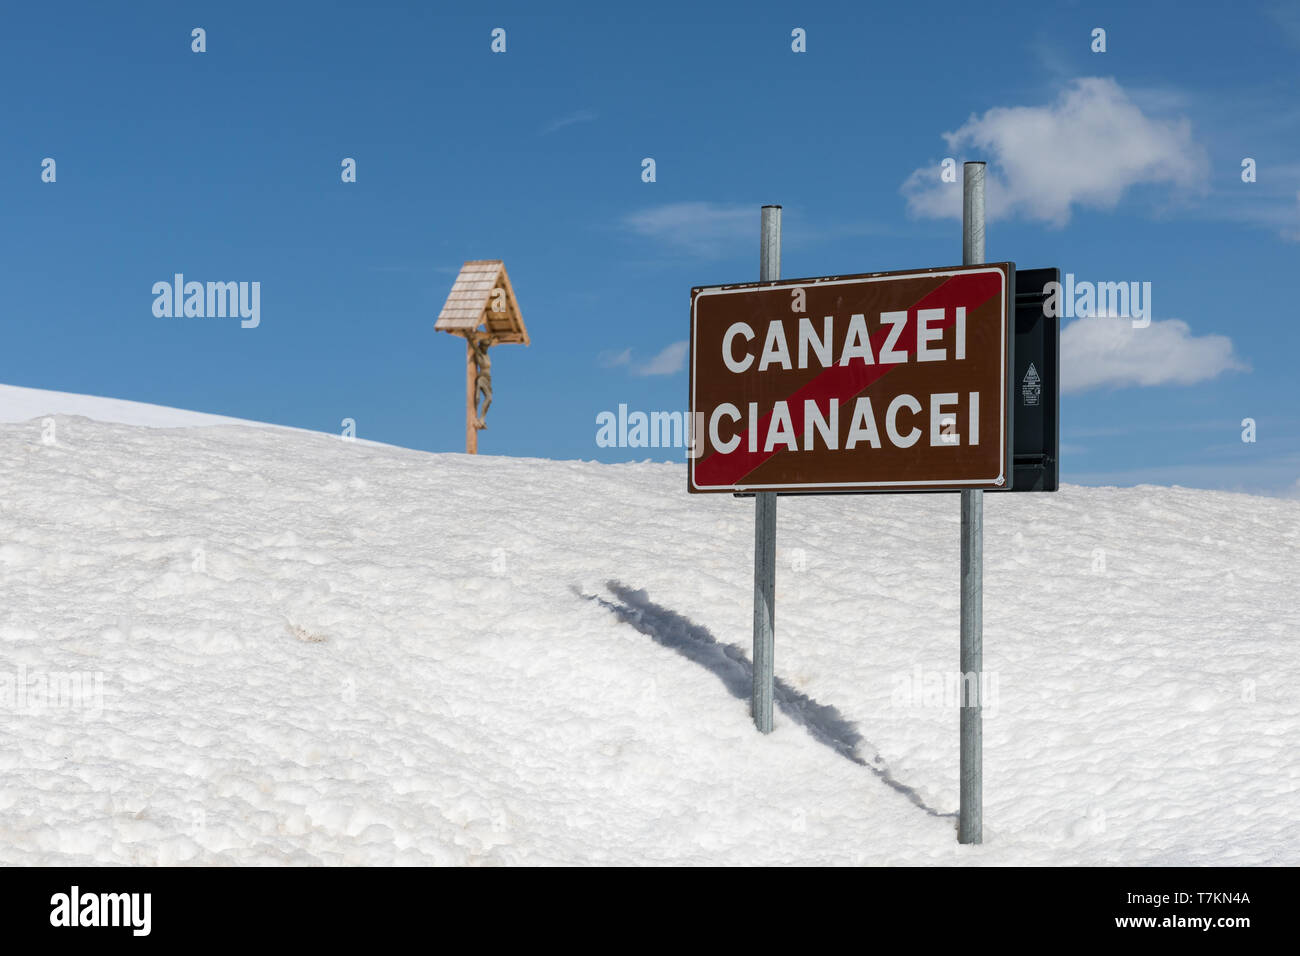 End of Canazei road sign at the Pordoi Pass, Dolomites, Italy - Stock Image